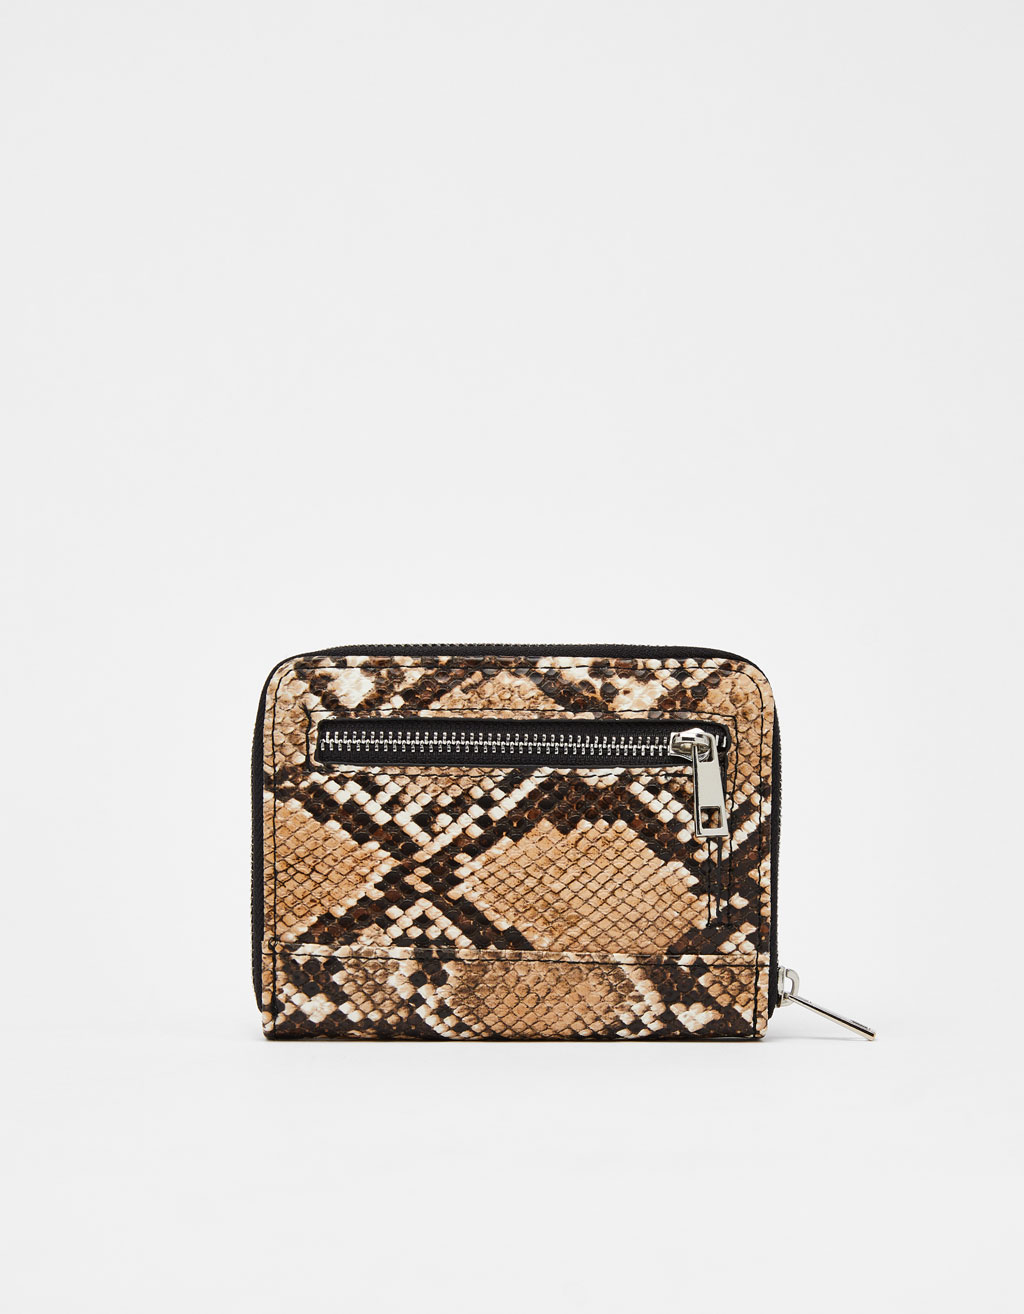 Snakeskin faux leather purse